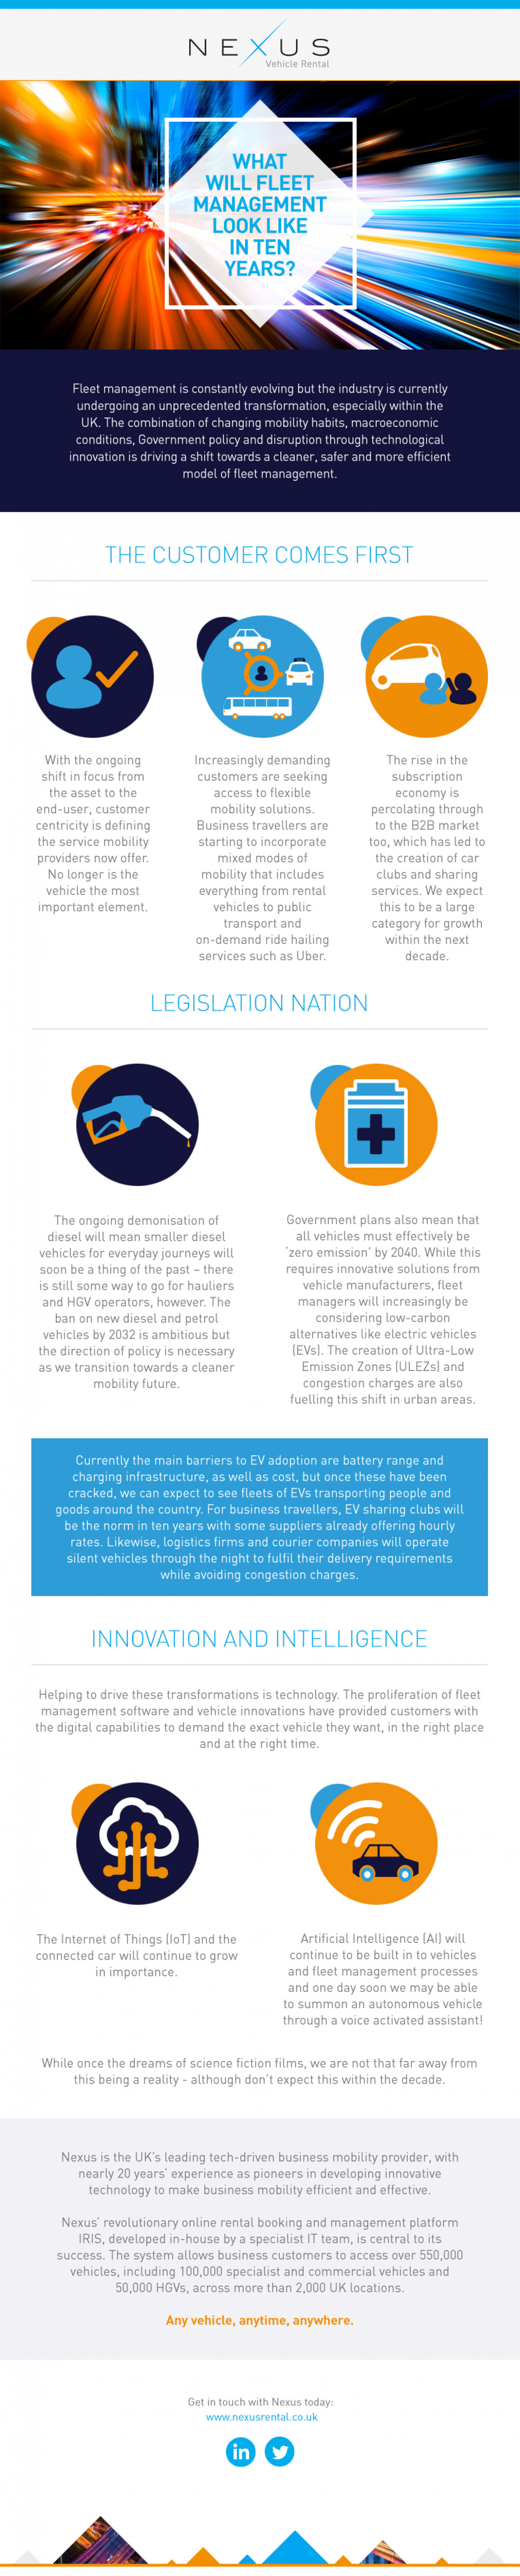 What Will Fleet Management Look Like in Ten Years? Infographic